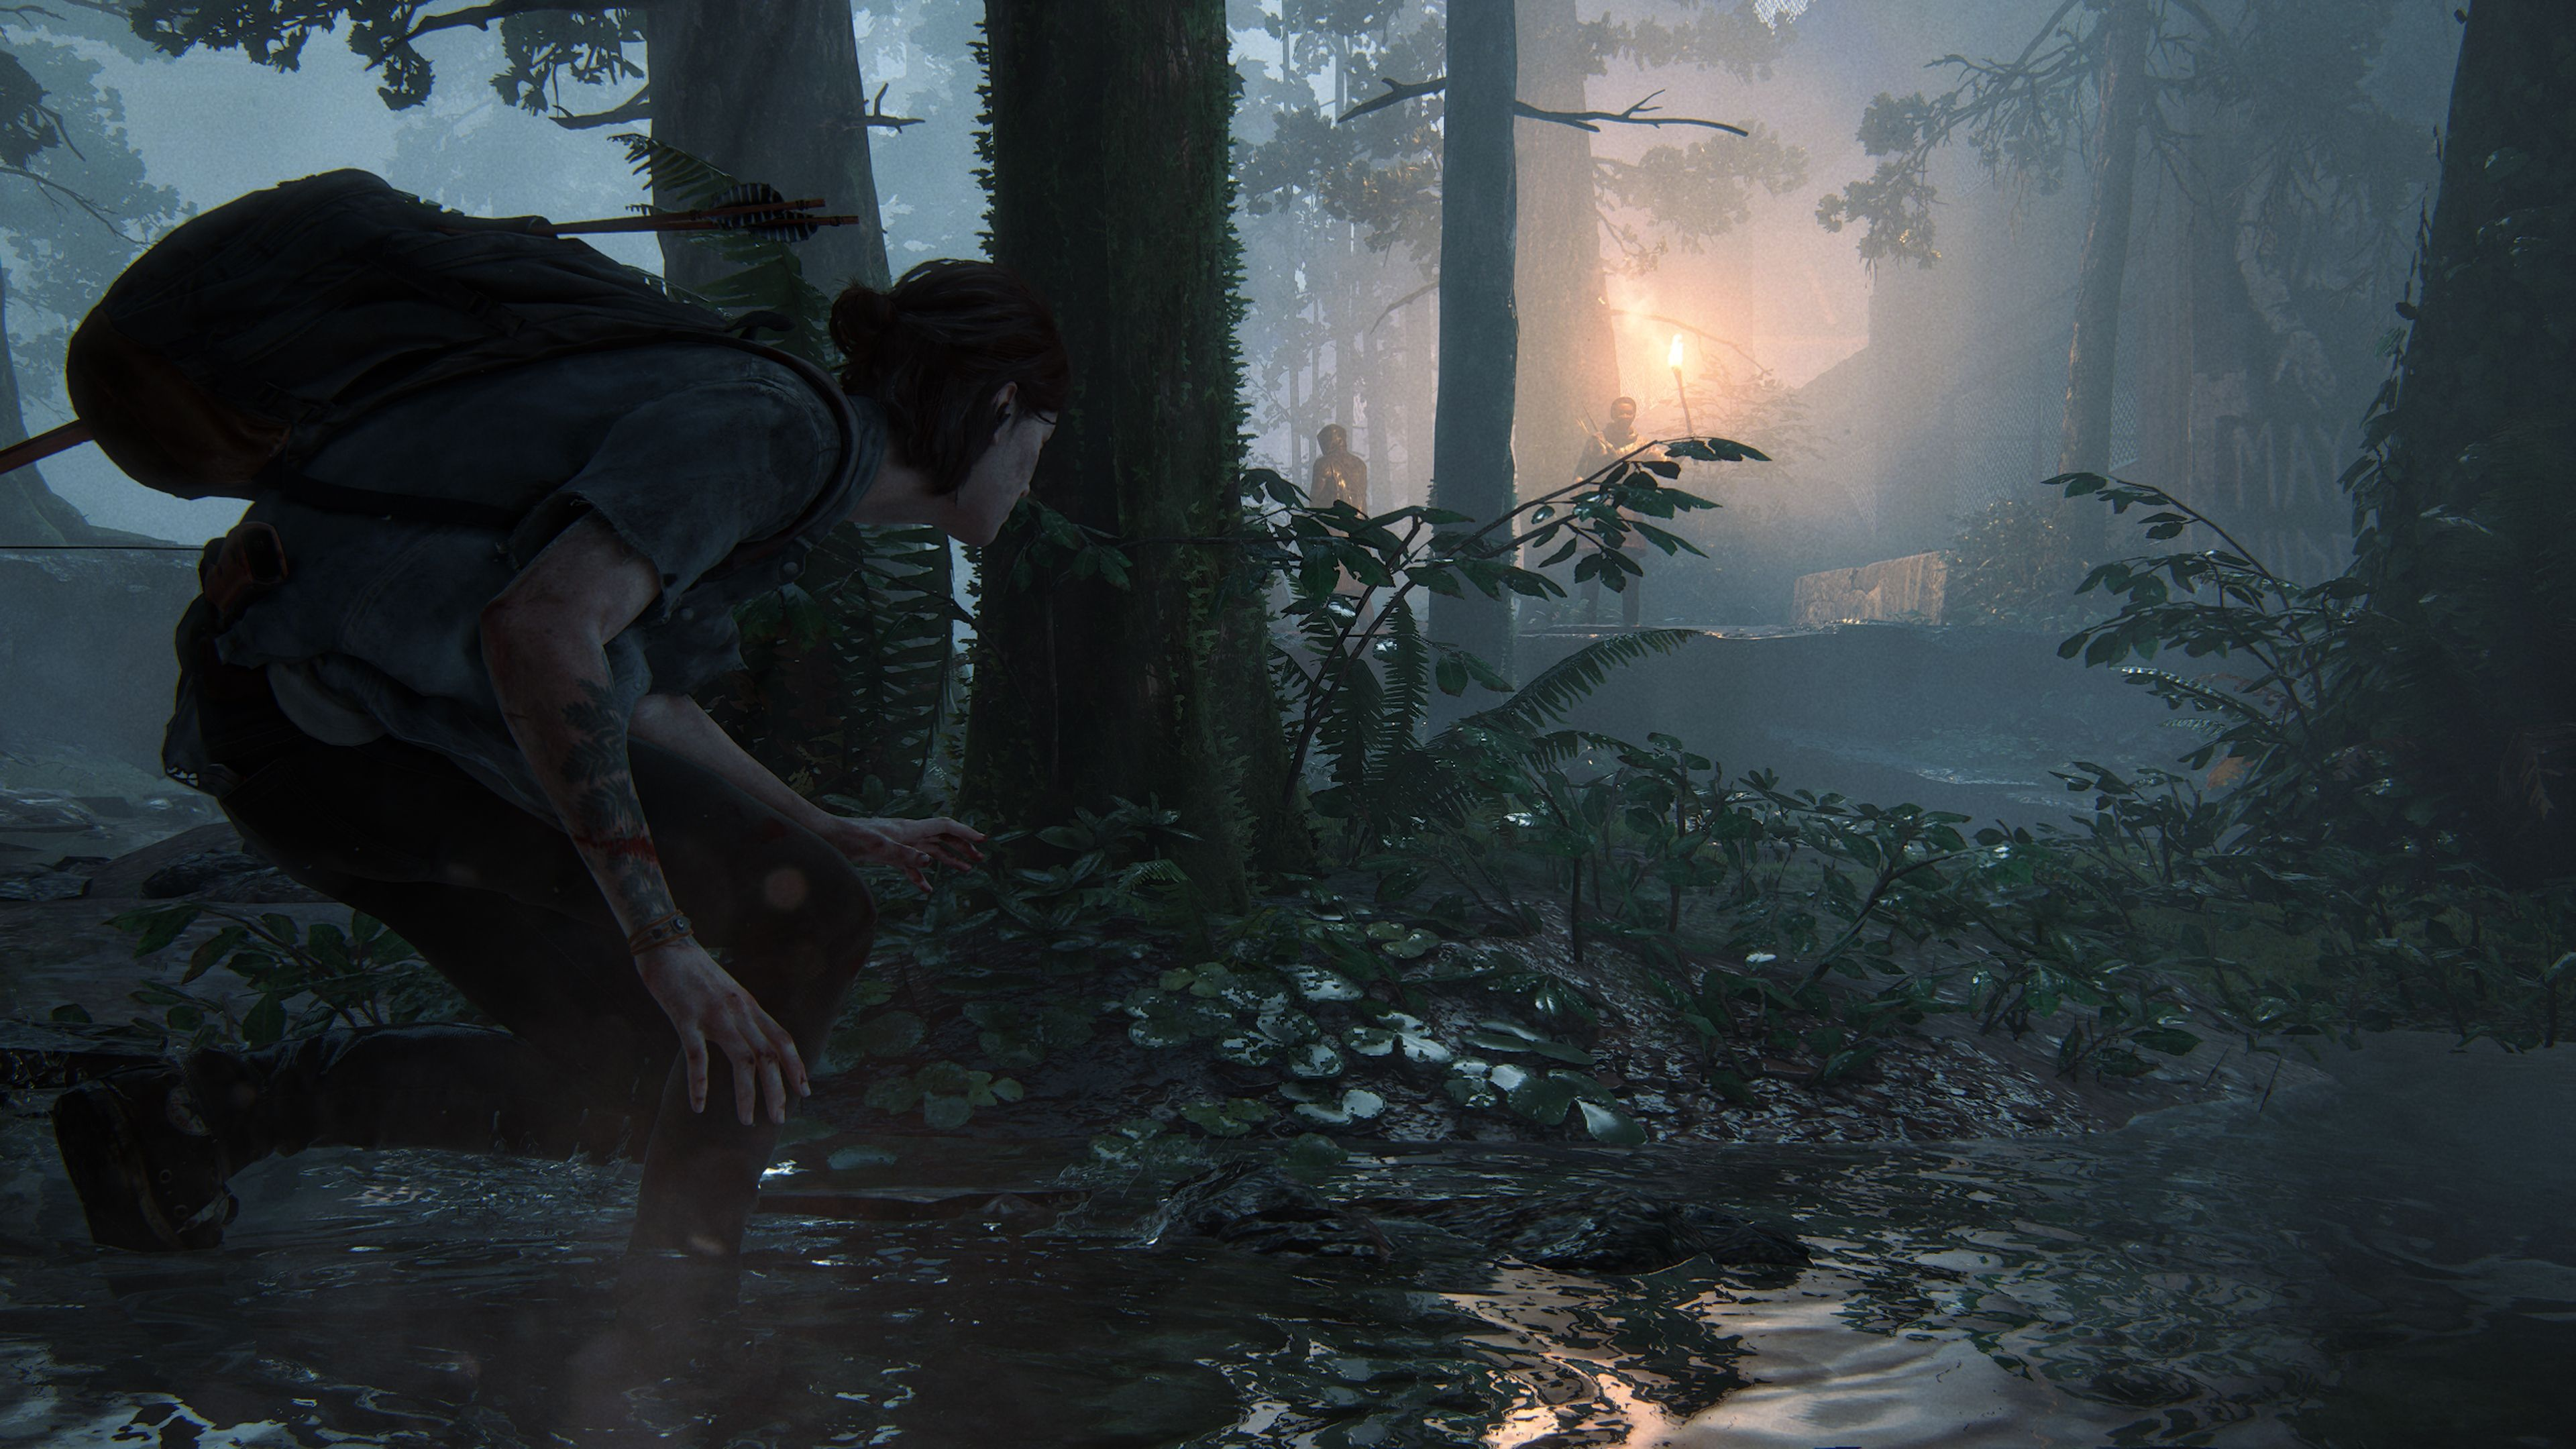 The Last of Us Part II (PS4) - 9